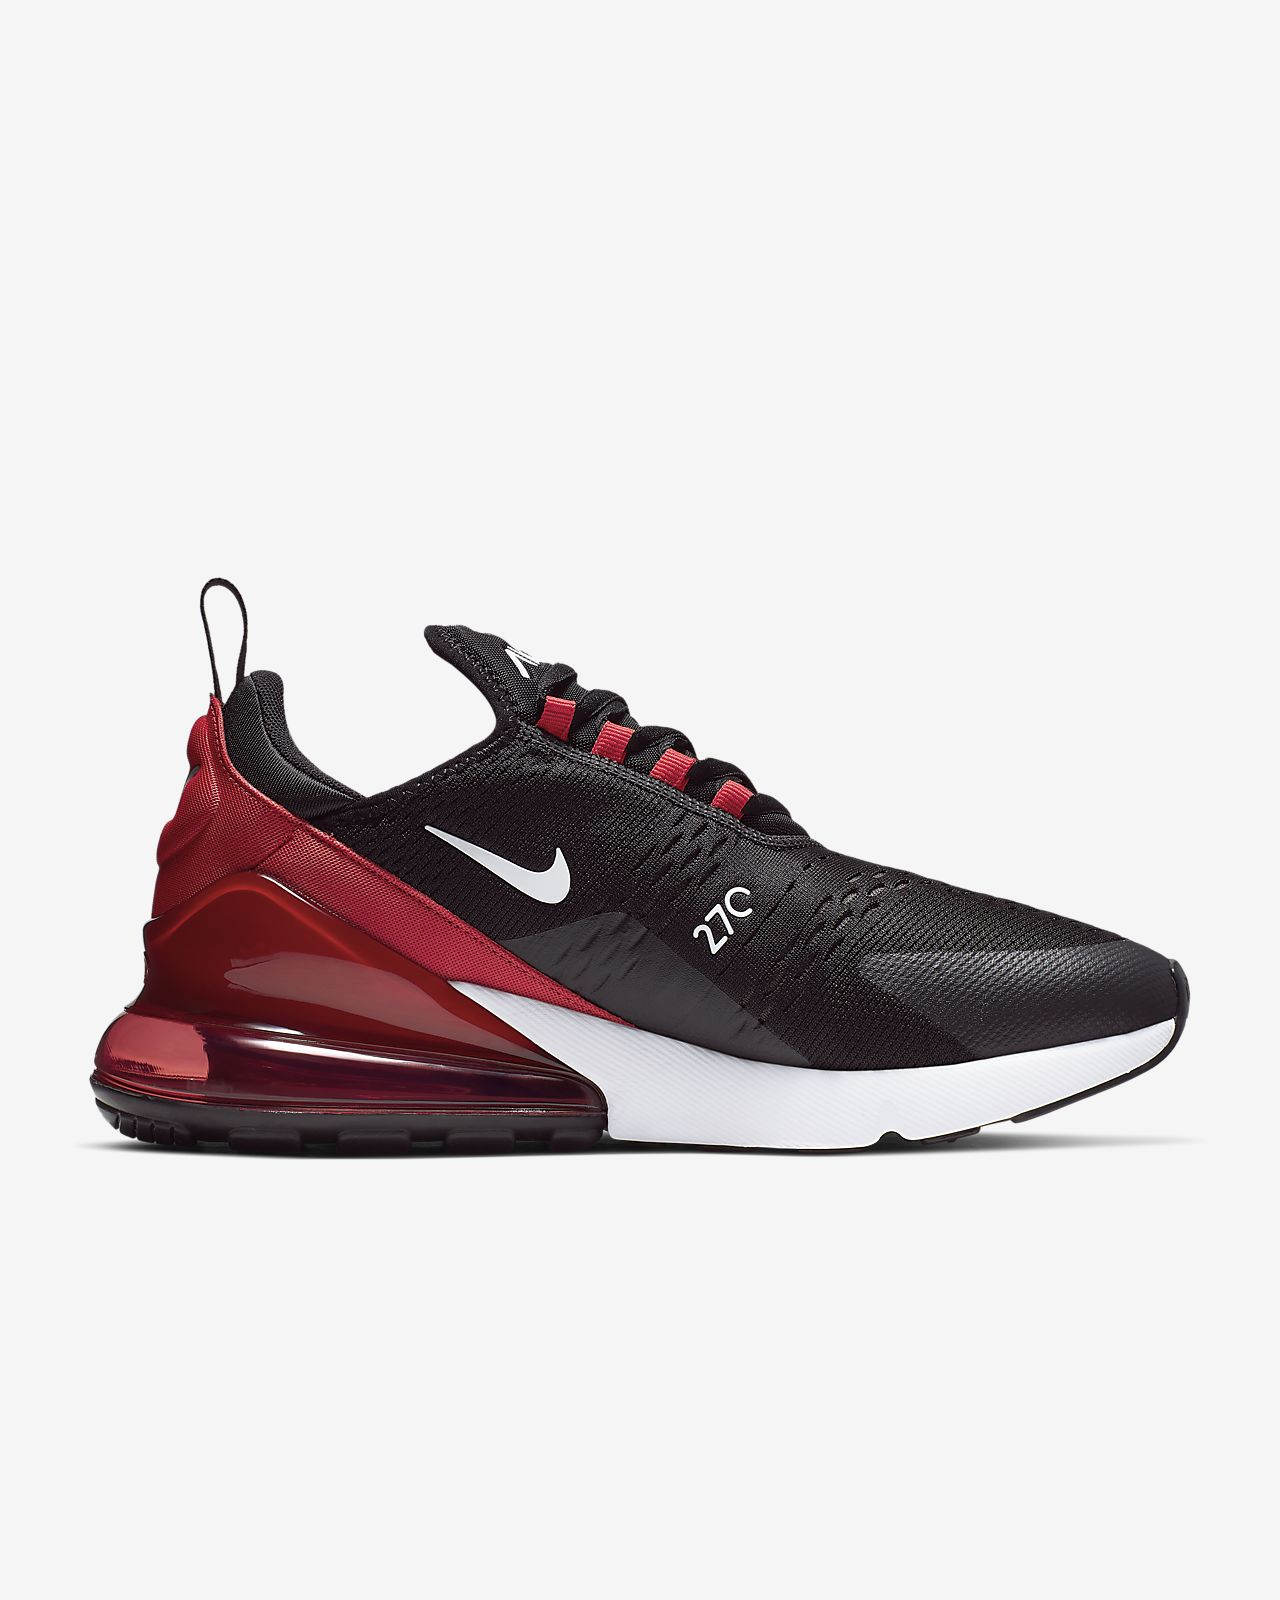 huge selection of 9e4bc e8c0d ... Sko Nike Air Max 270 för män